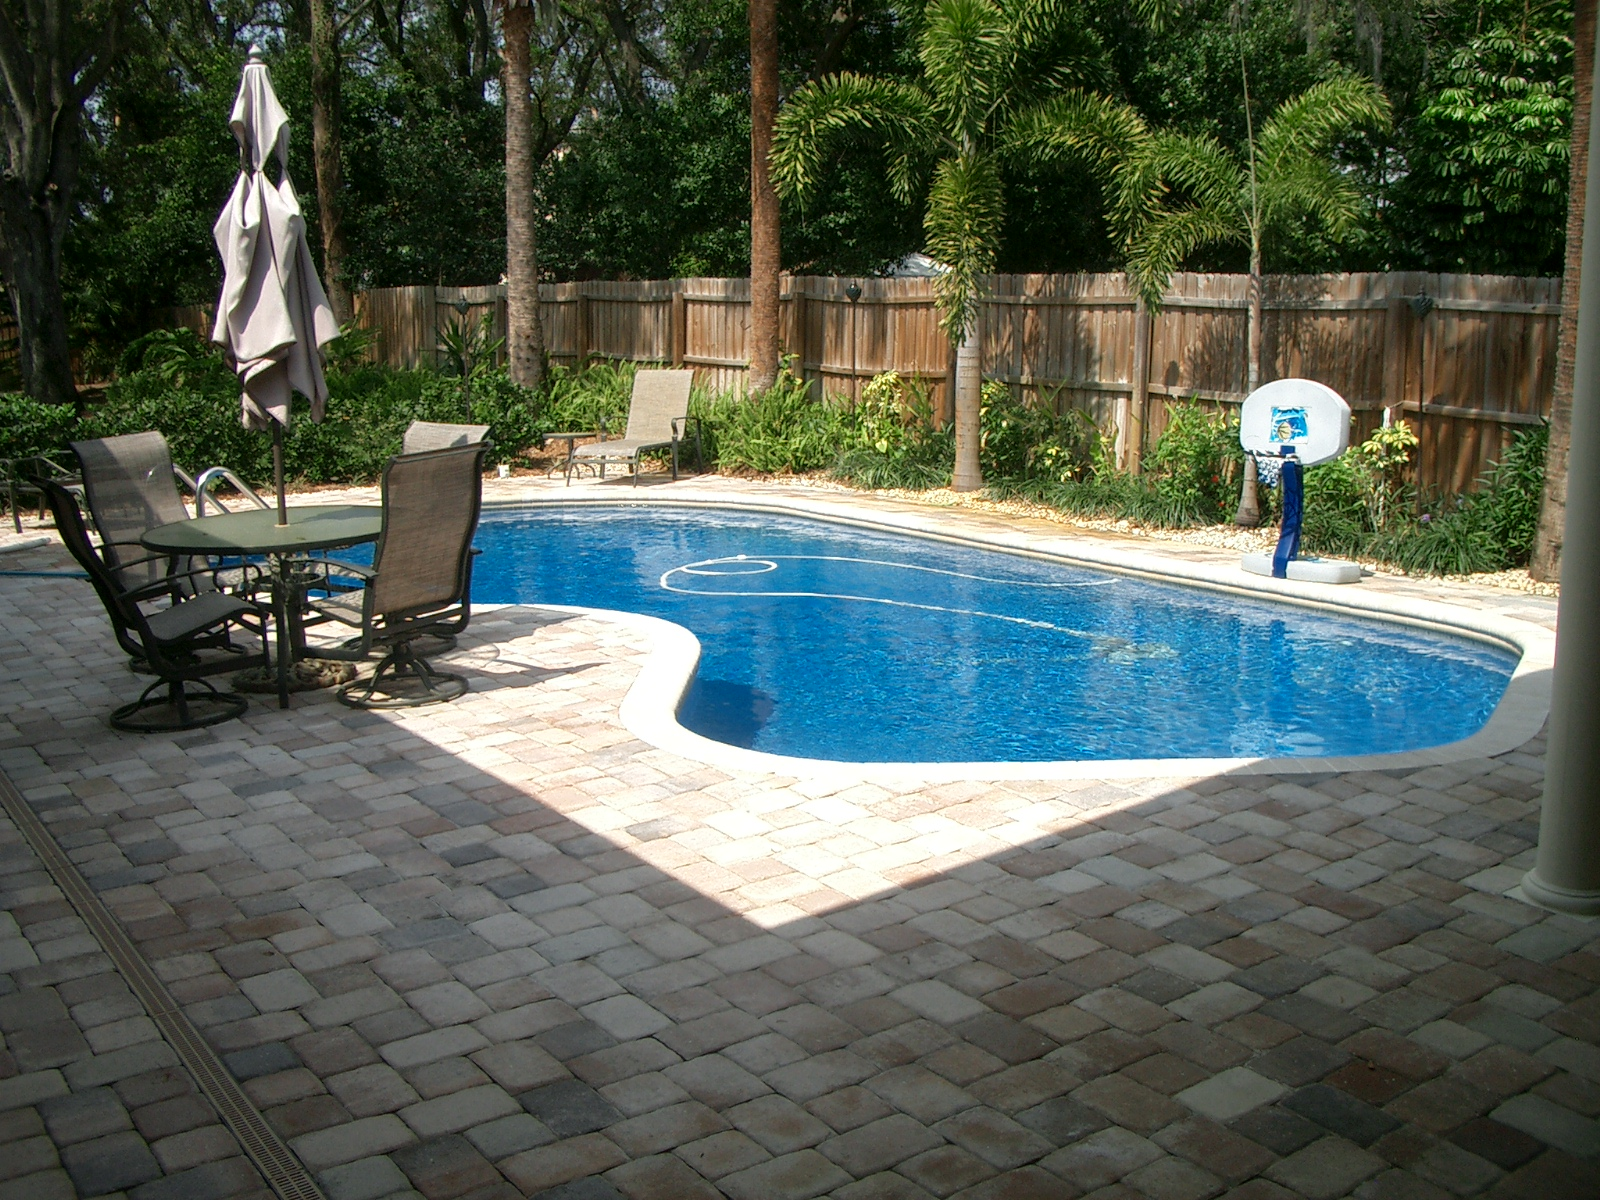 Backyard ideas with pool